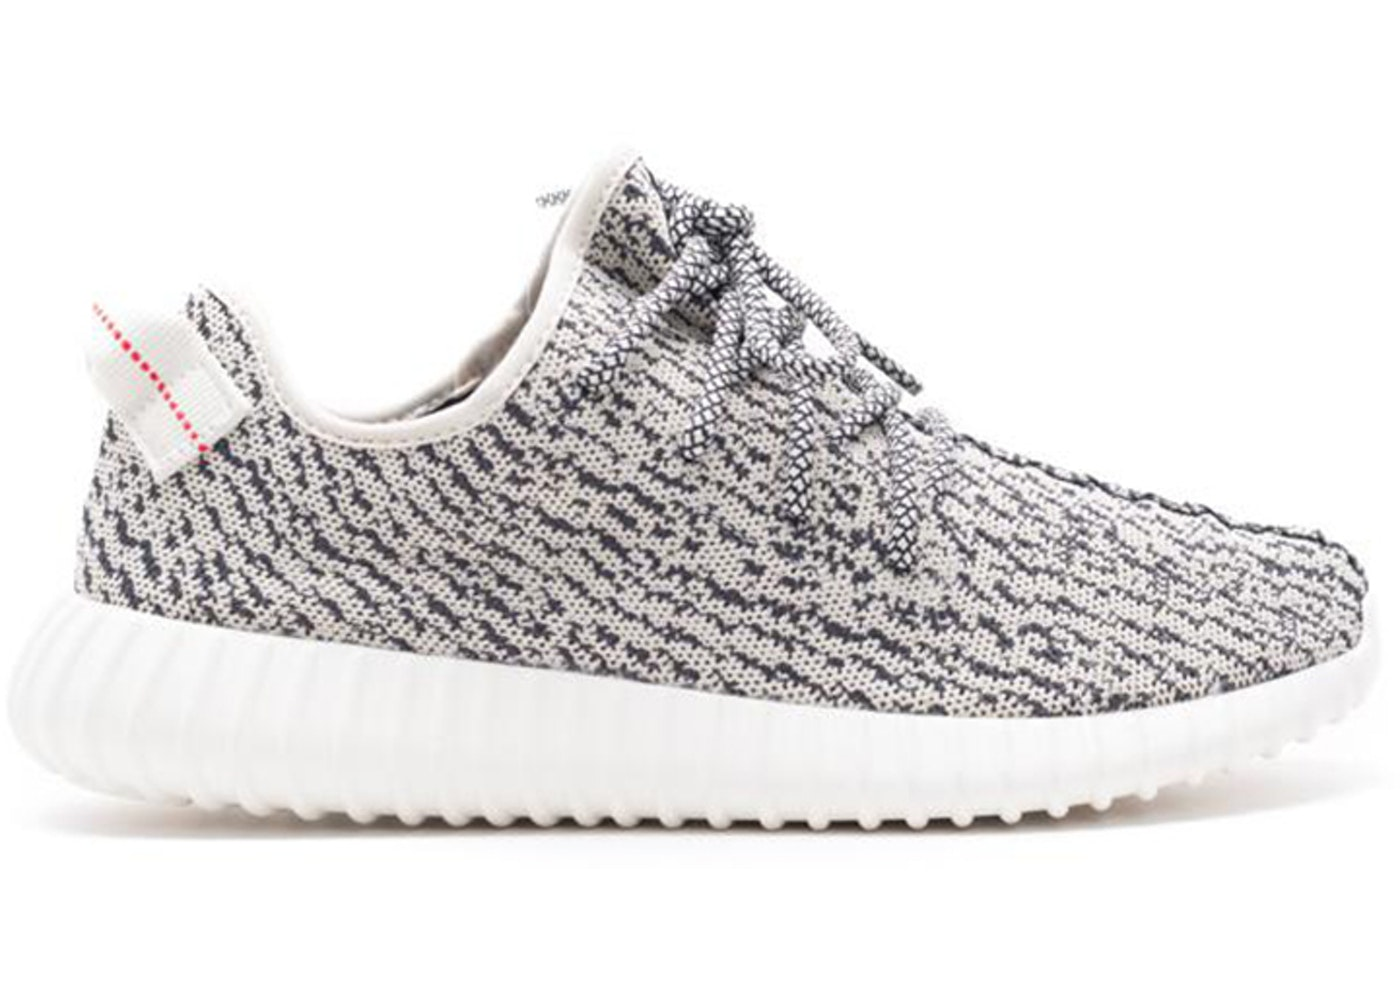 Kanye West Authentic Adidas Yeezy 350 Boost 'Turtle Dove' AQ 4832